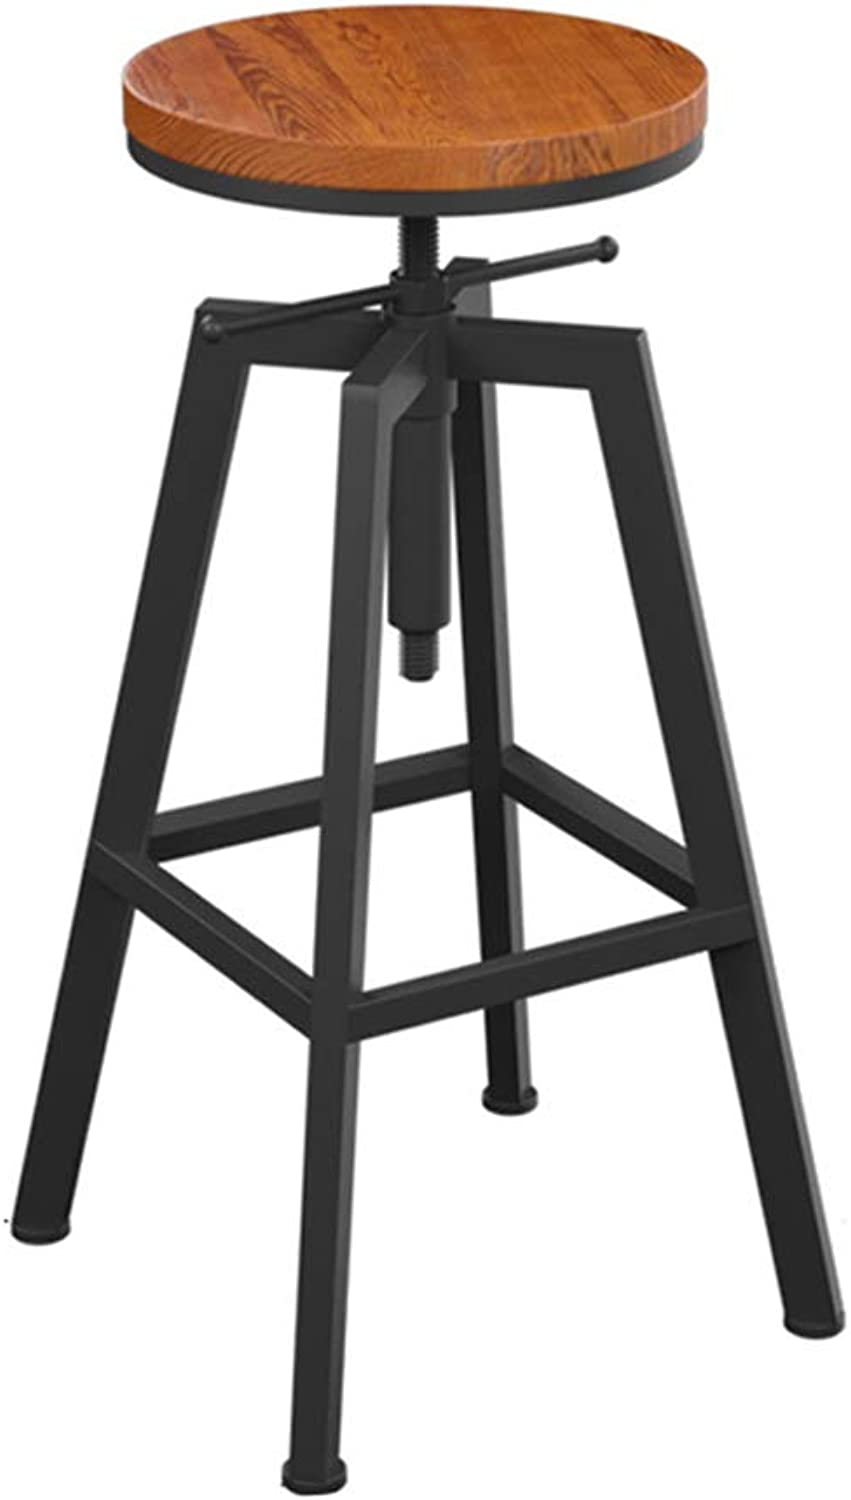 Barstools Metal Frame Counter Stool Bar Chair Height Adjustable Pub Kitchen Breakfast Dining Chair Solid Wood Seat Max Load 150kg